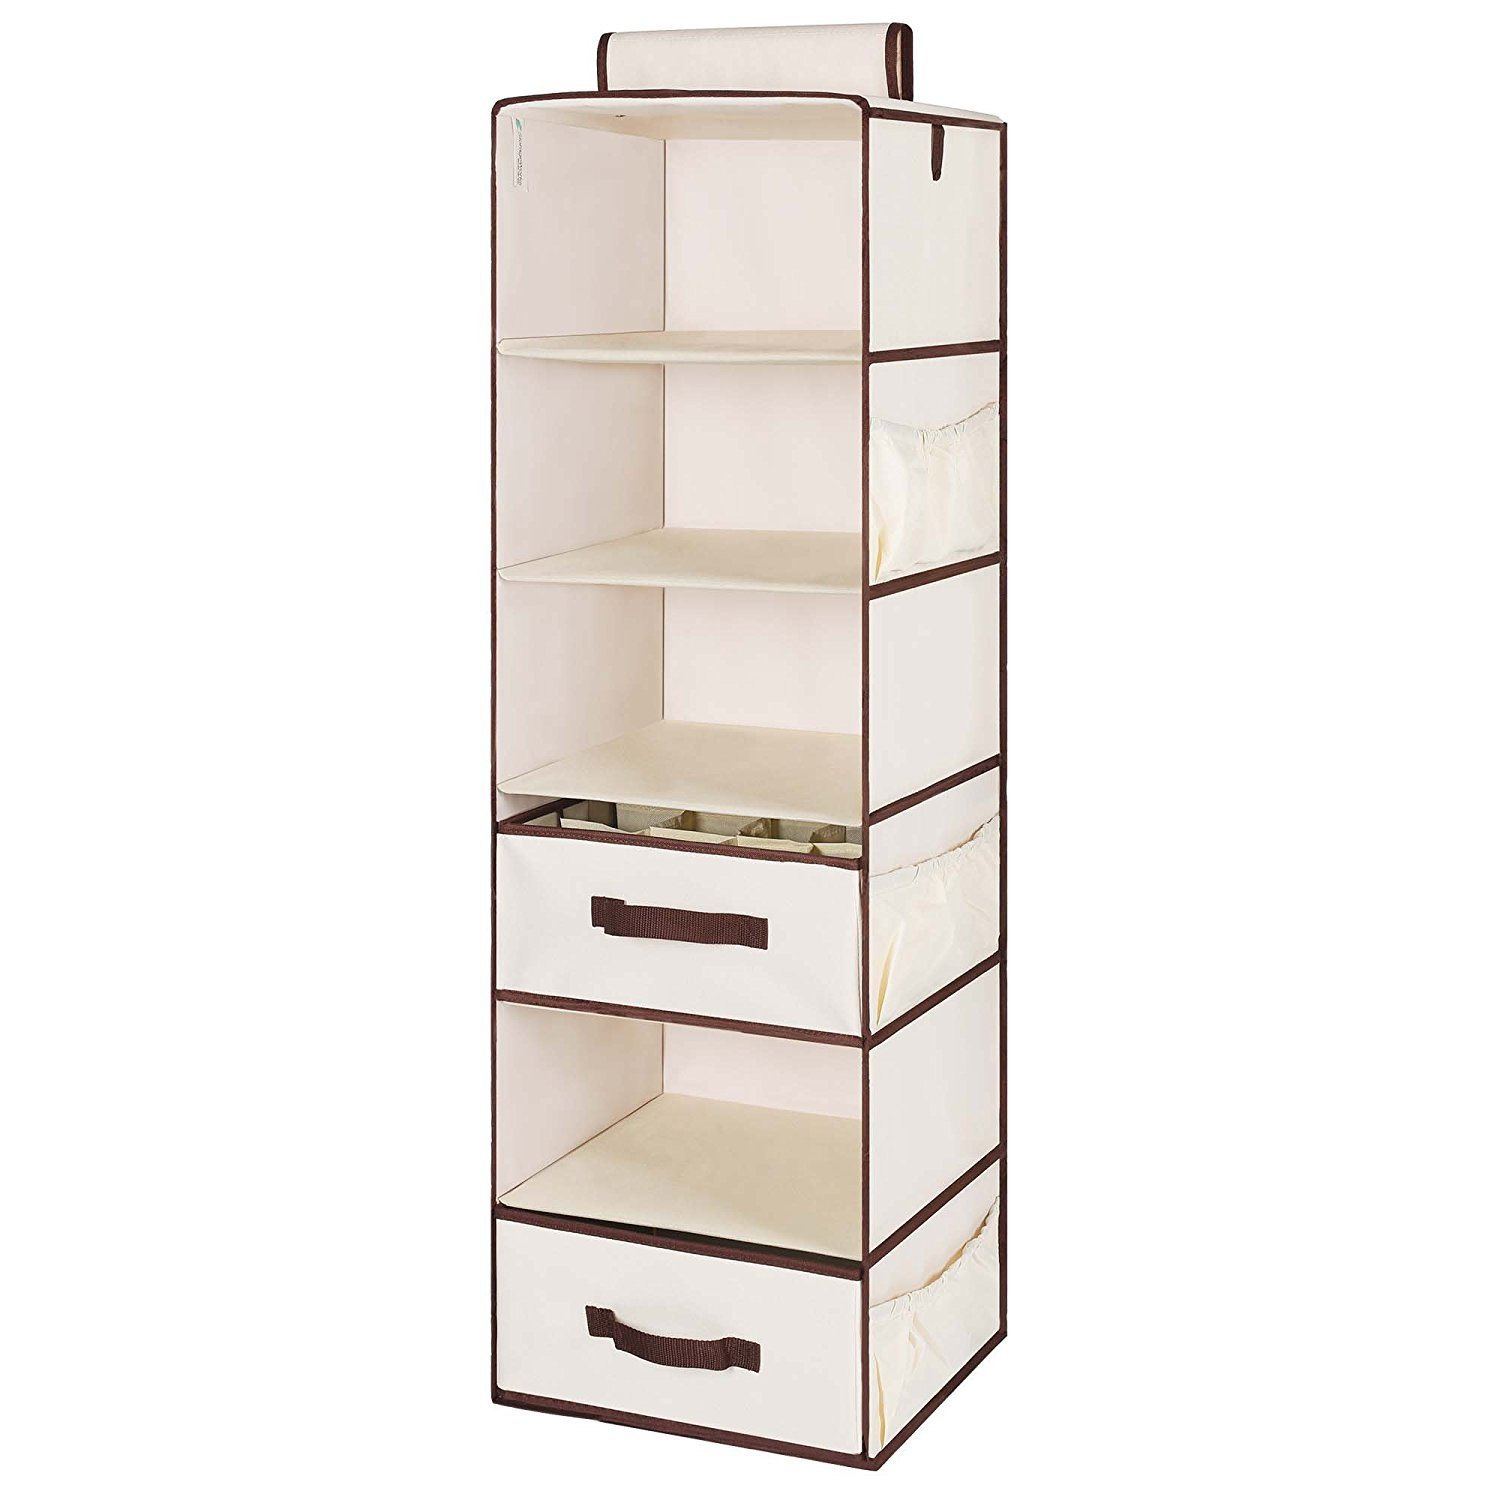 racks as for hanging wire in white unit walk stowage popular frames and space featuring closet basket ideas storage personal well with tabl open clothing shelves alluring coffee drawers towel glorious shoes plus also wooden round set